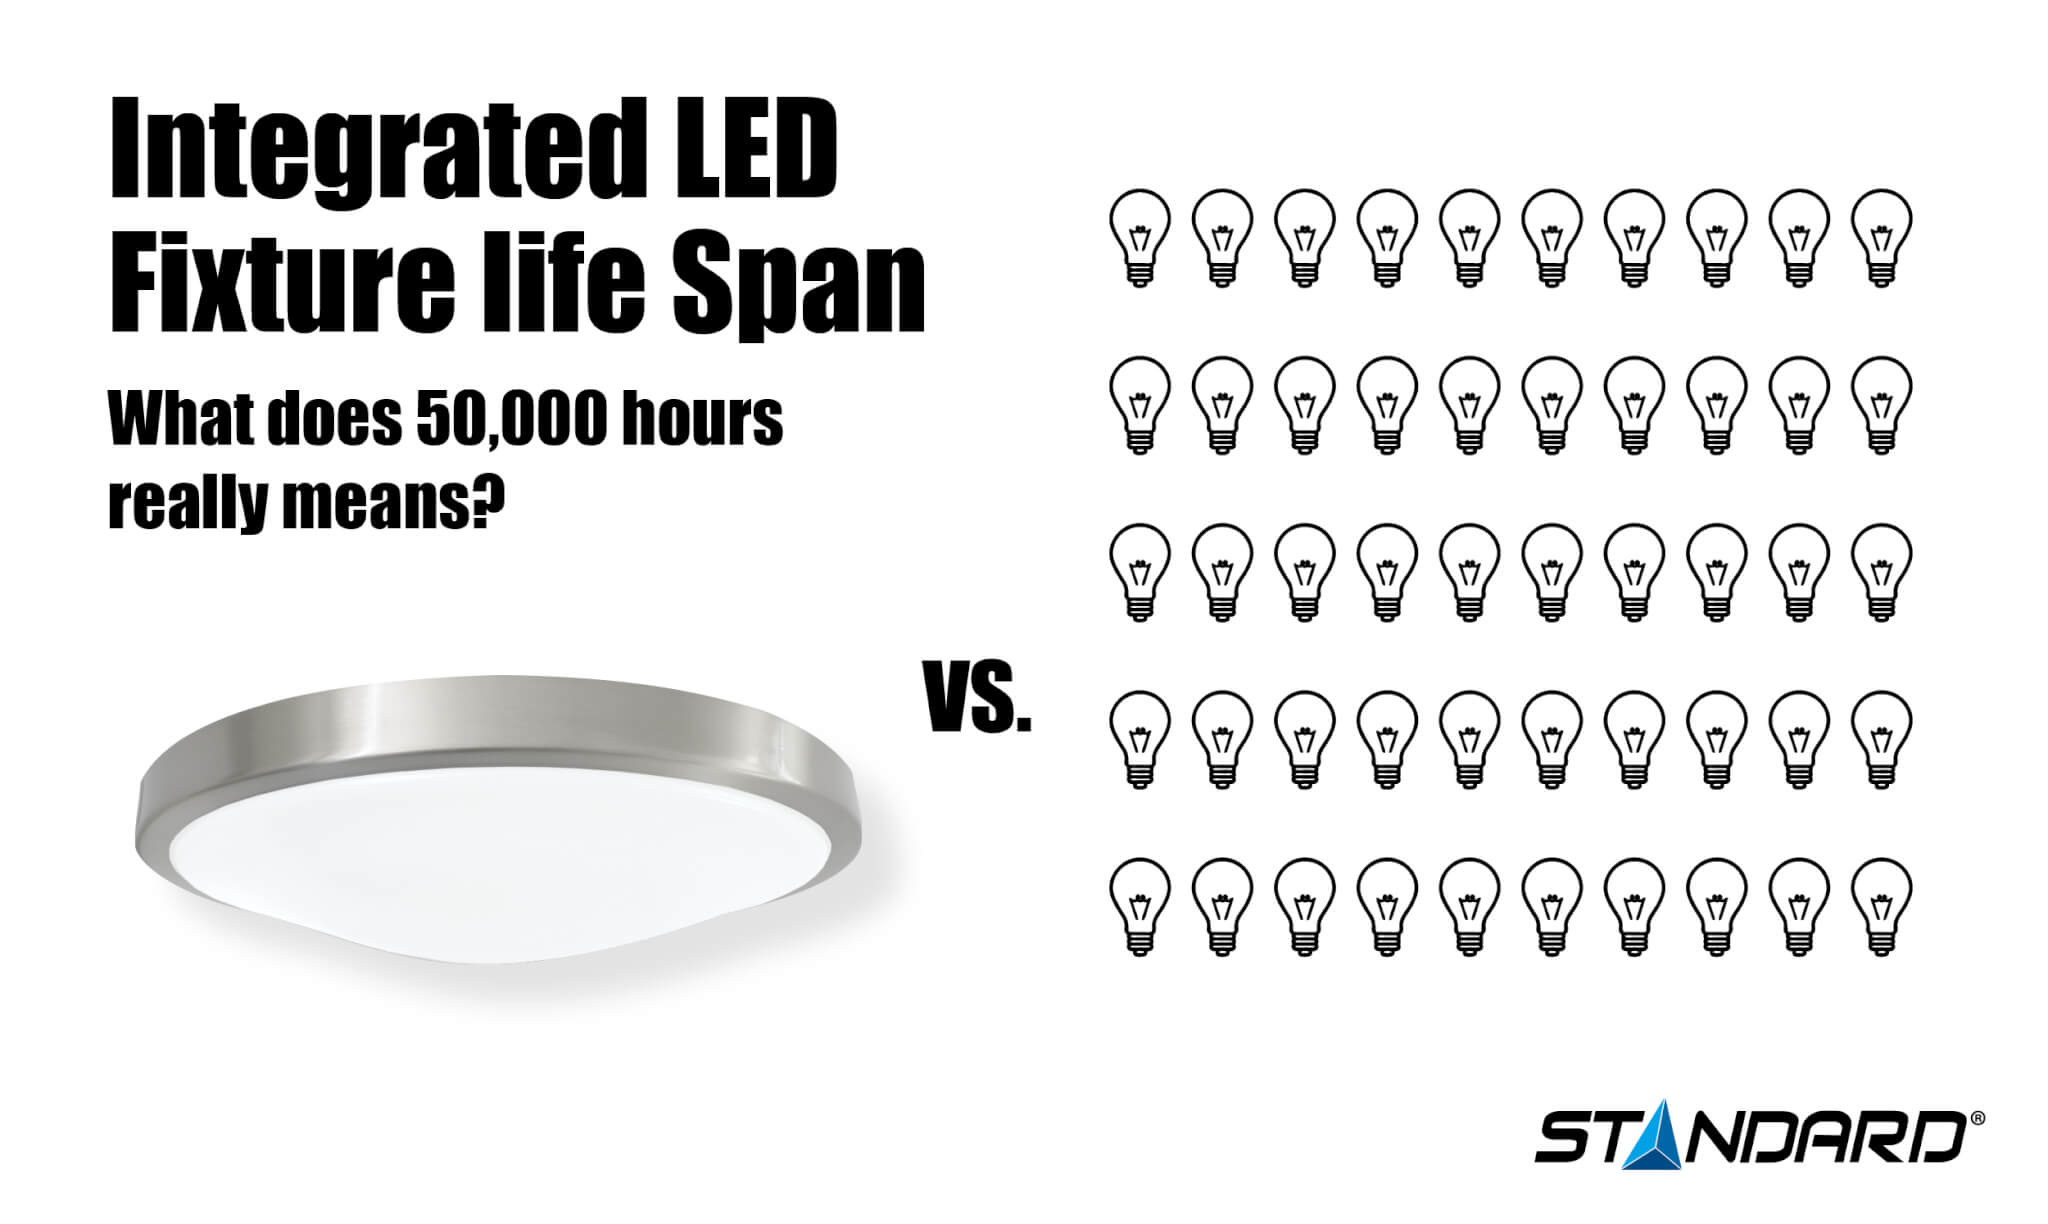 Integrated LED Fixture Life Span